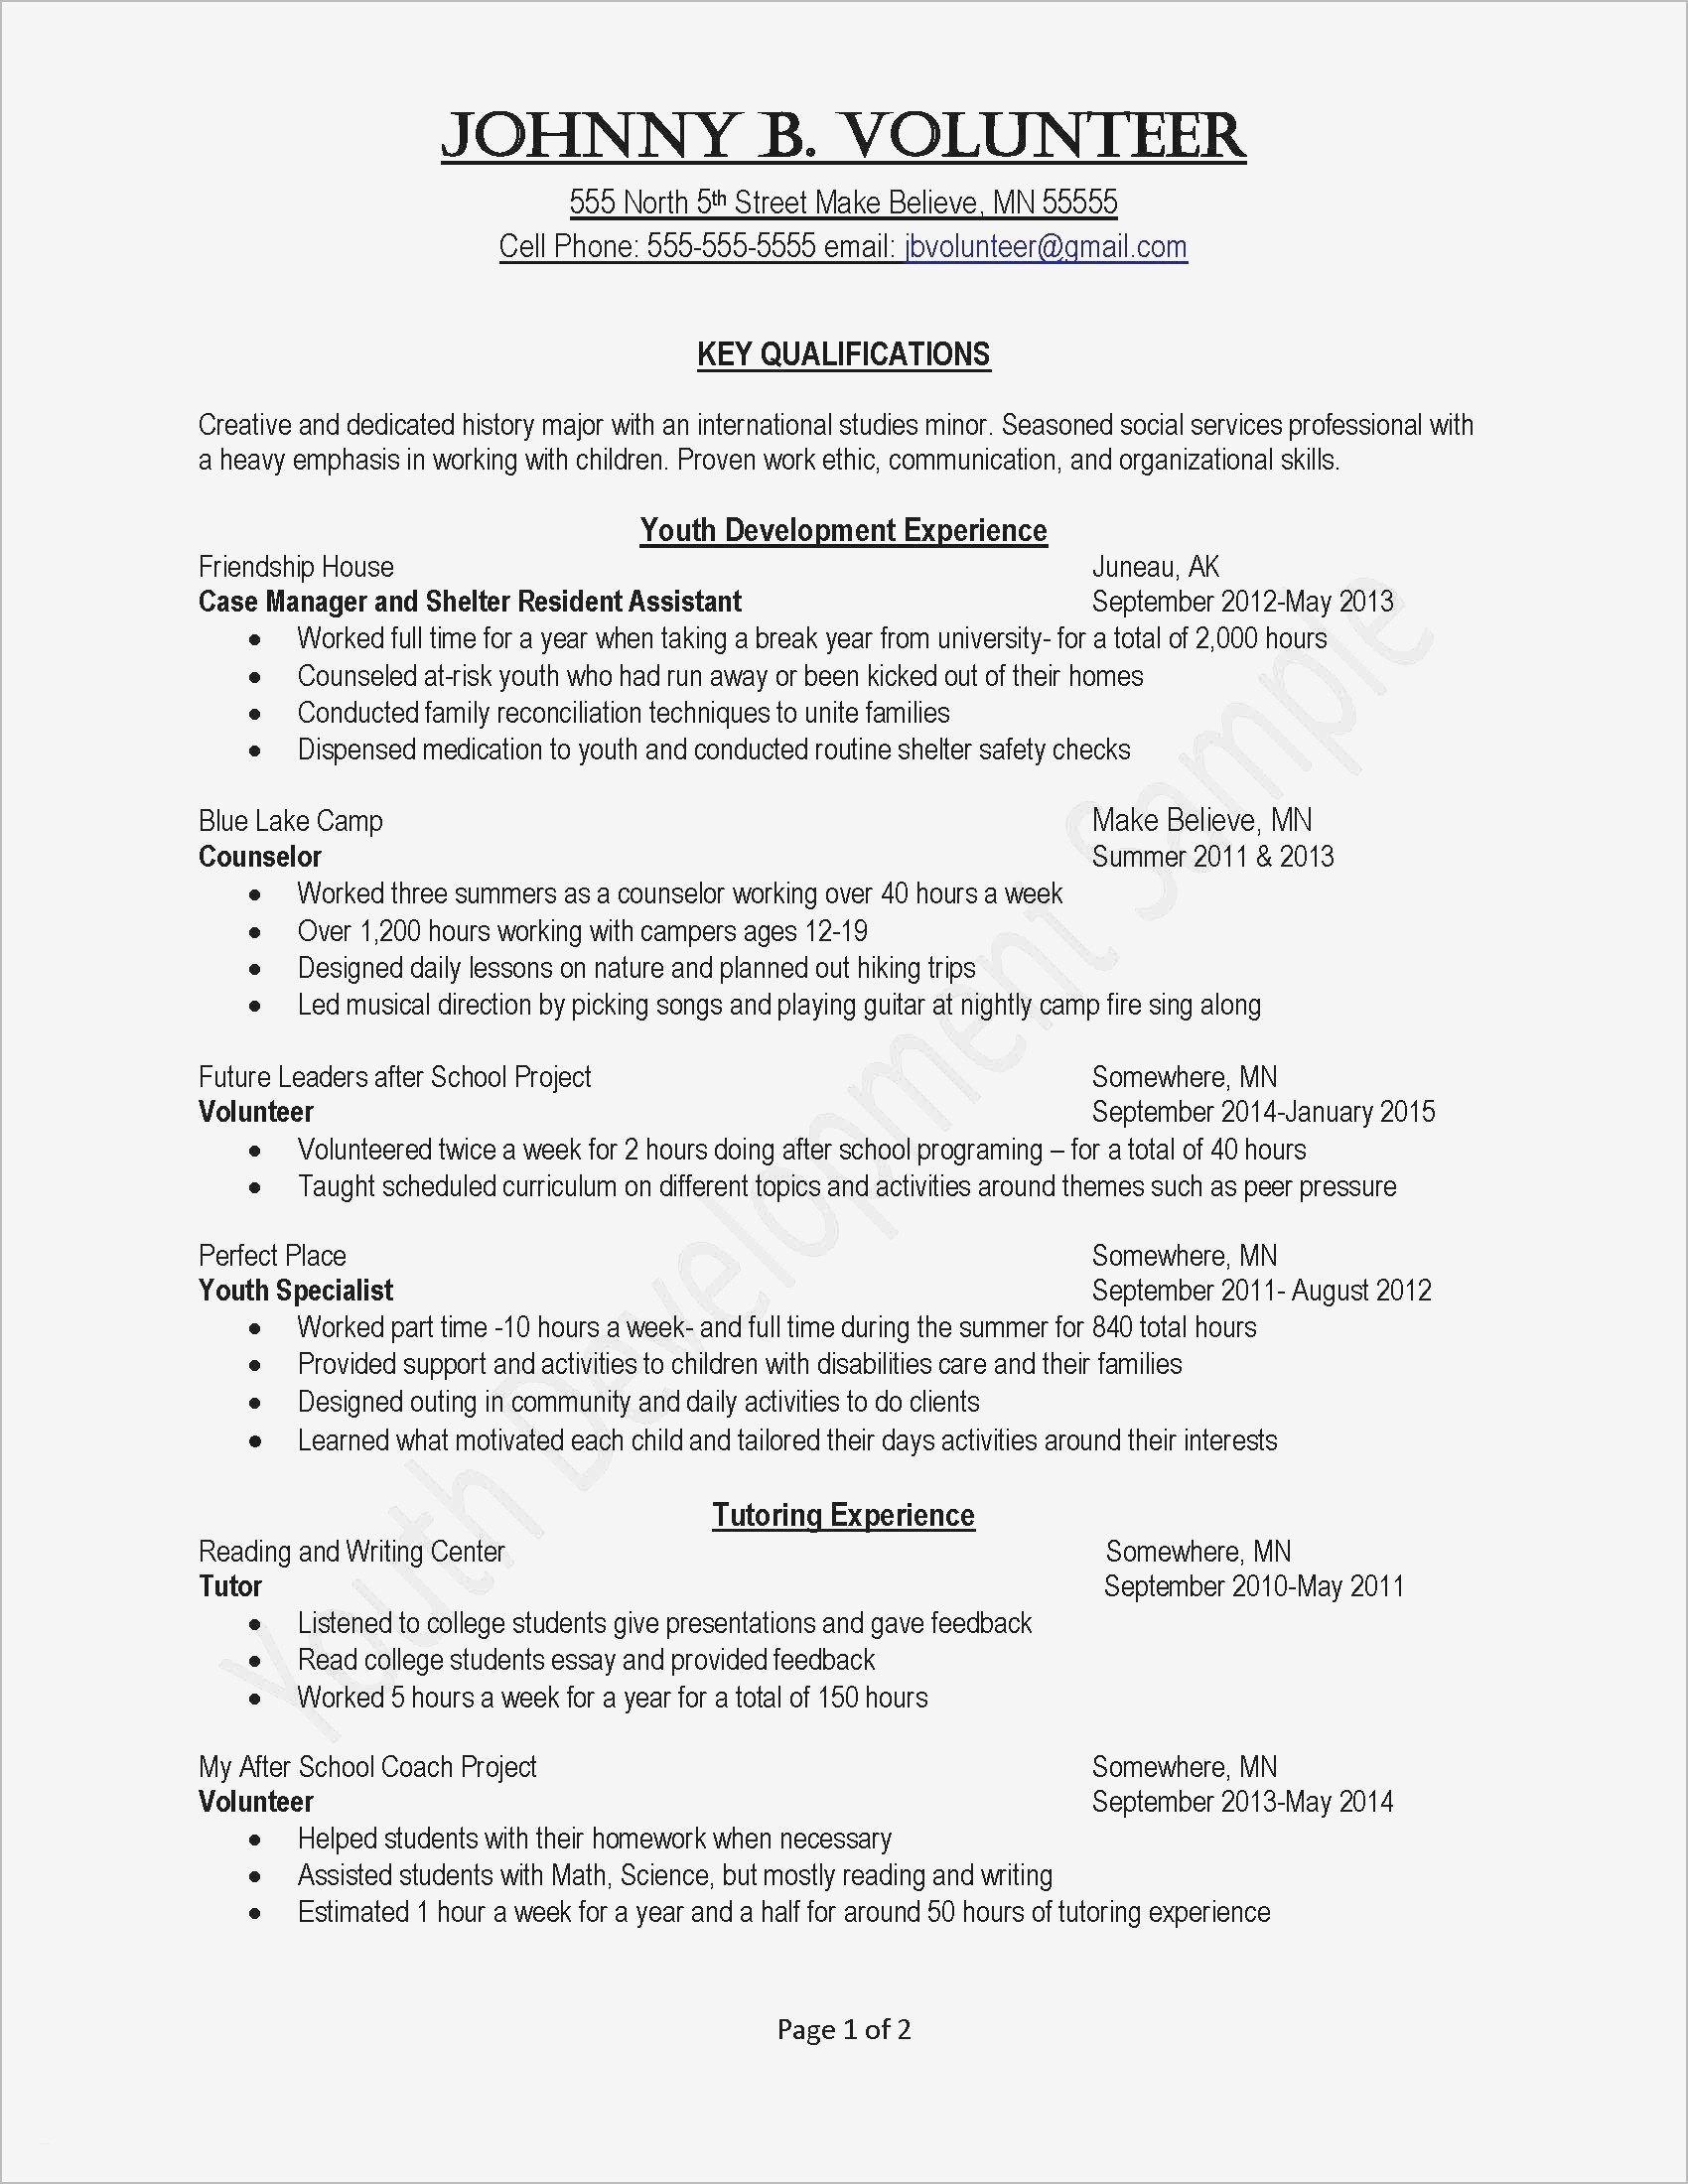 How to Make A Cover Letter Template - Skills Resume Templates Beautiful Job Fer Letter Template Us Copy Od